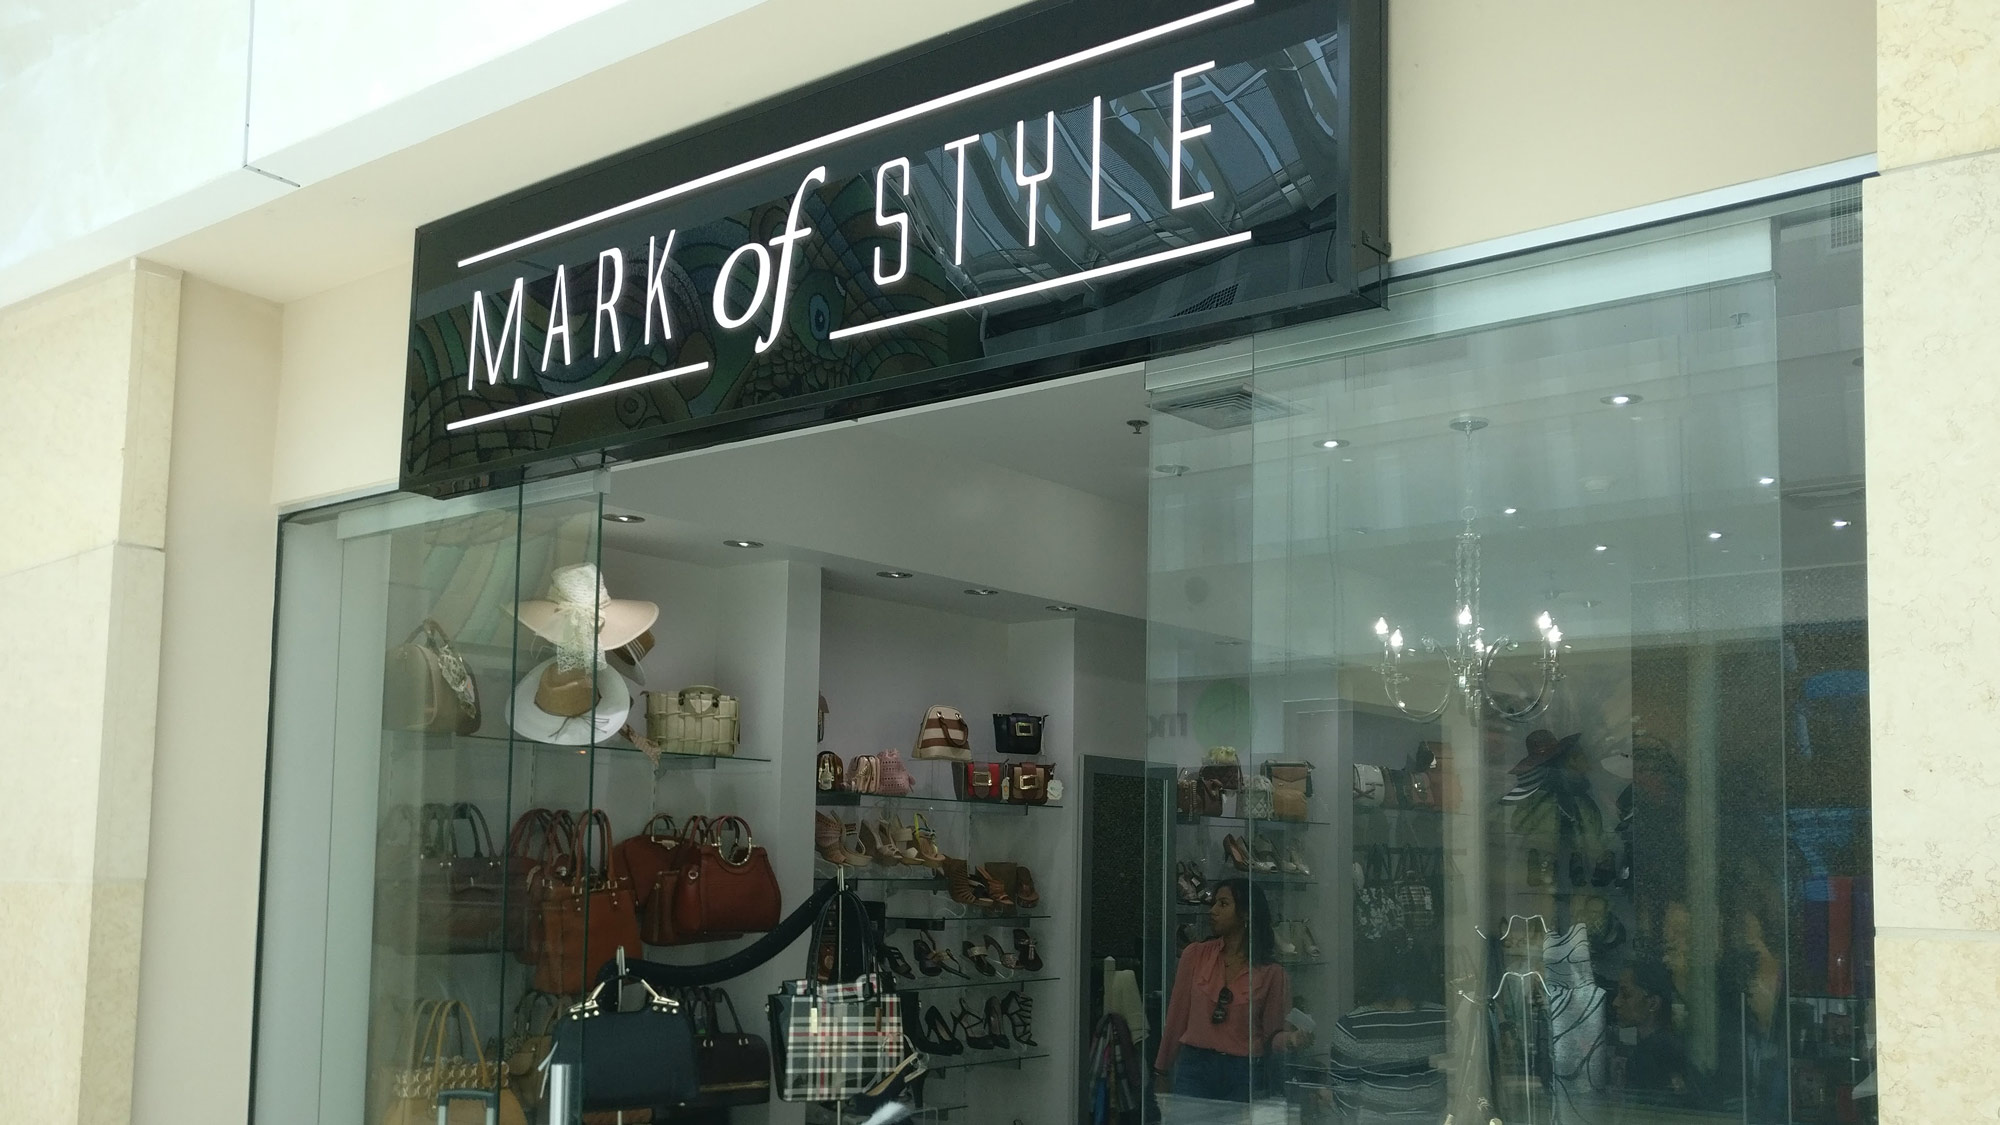 Mark of Style